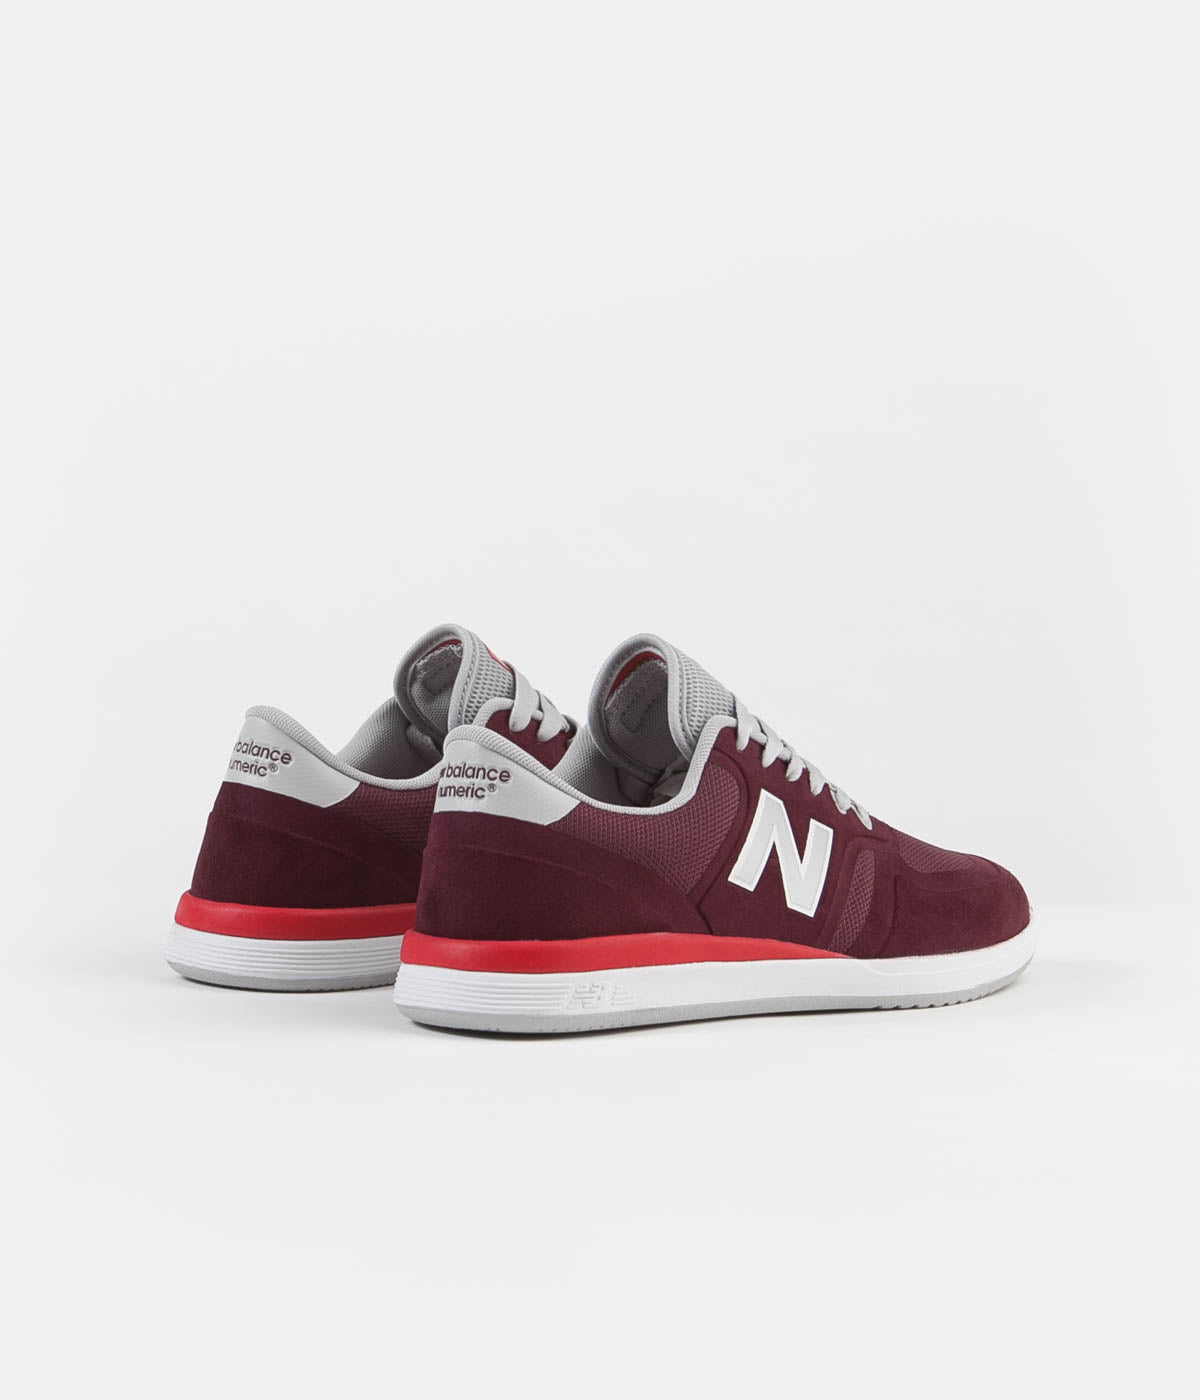 New Balance Numeric 420 Shoes - Burgundy / Red